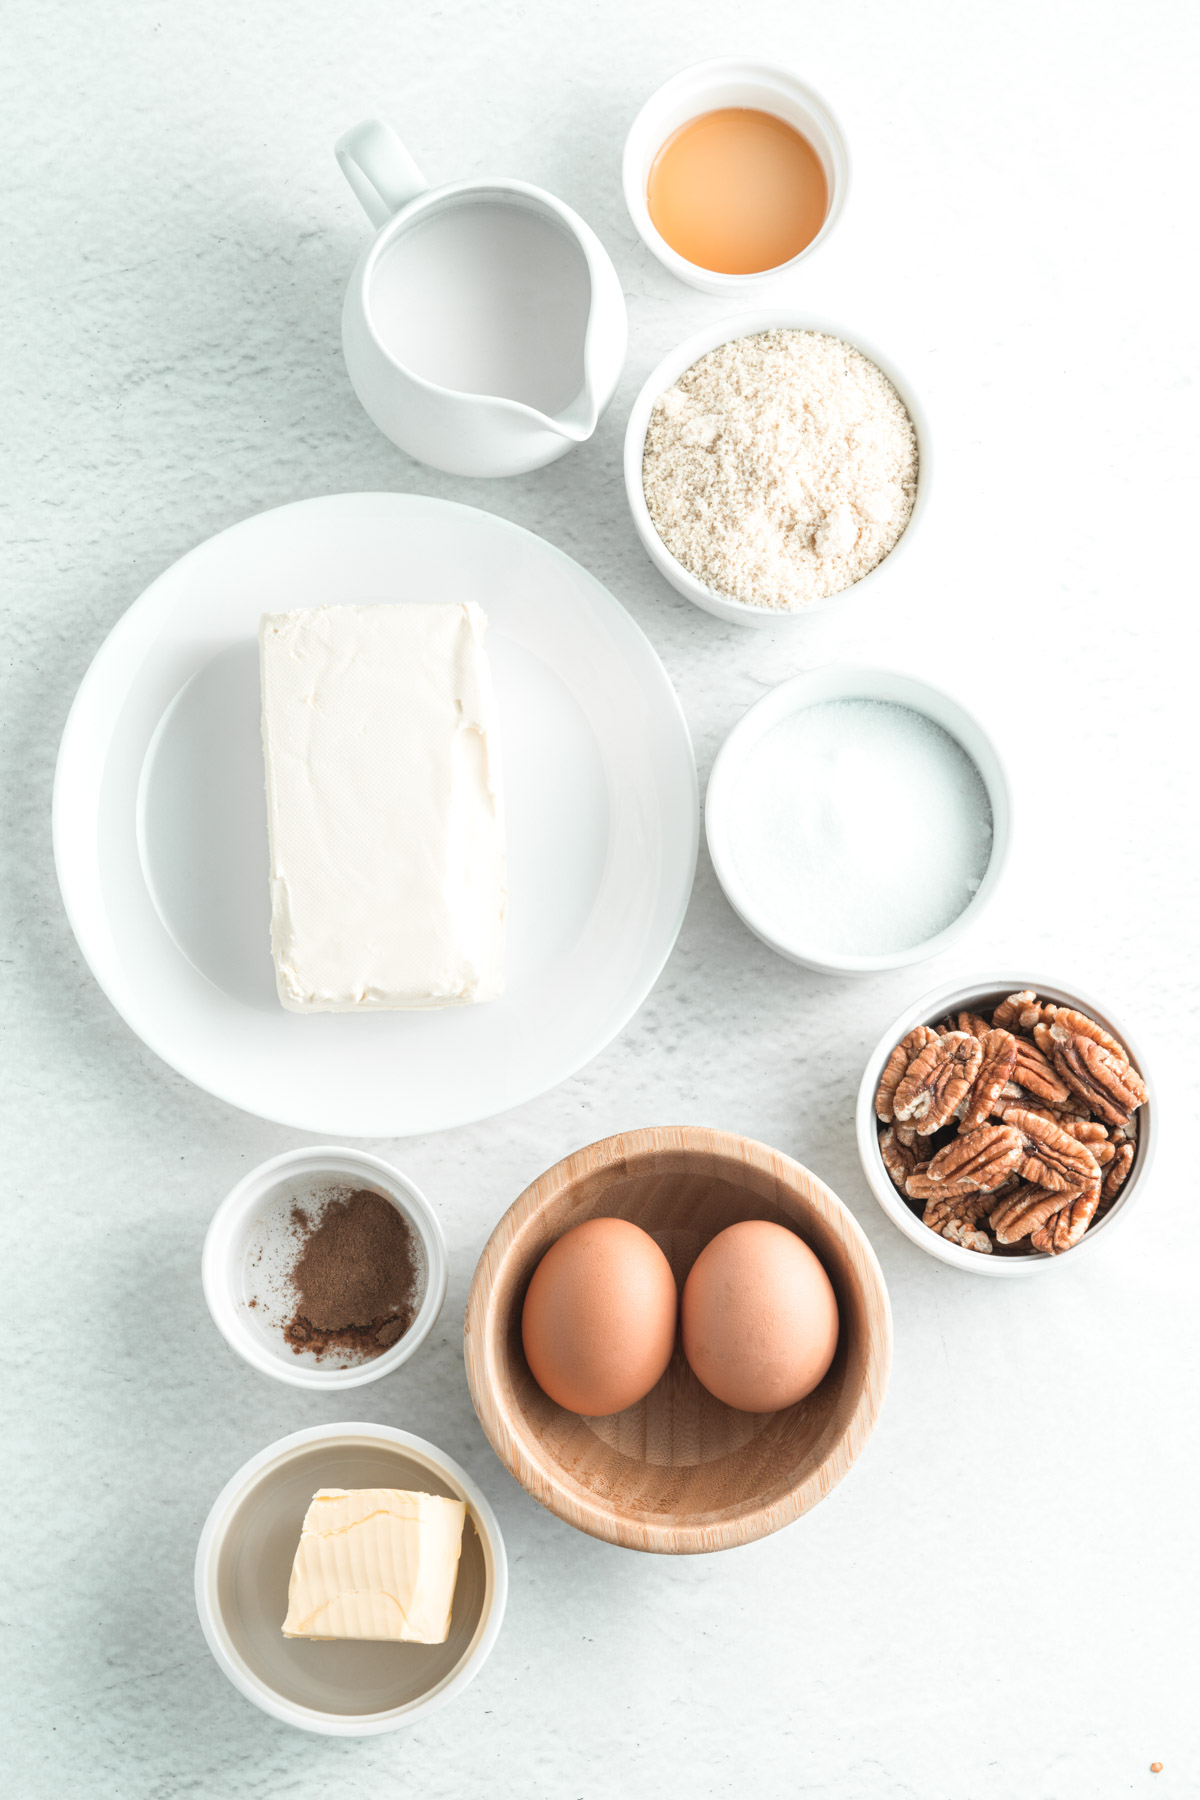 ingredients for keto pecan cheesecake